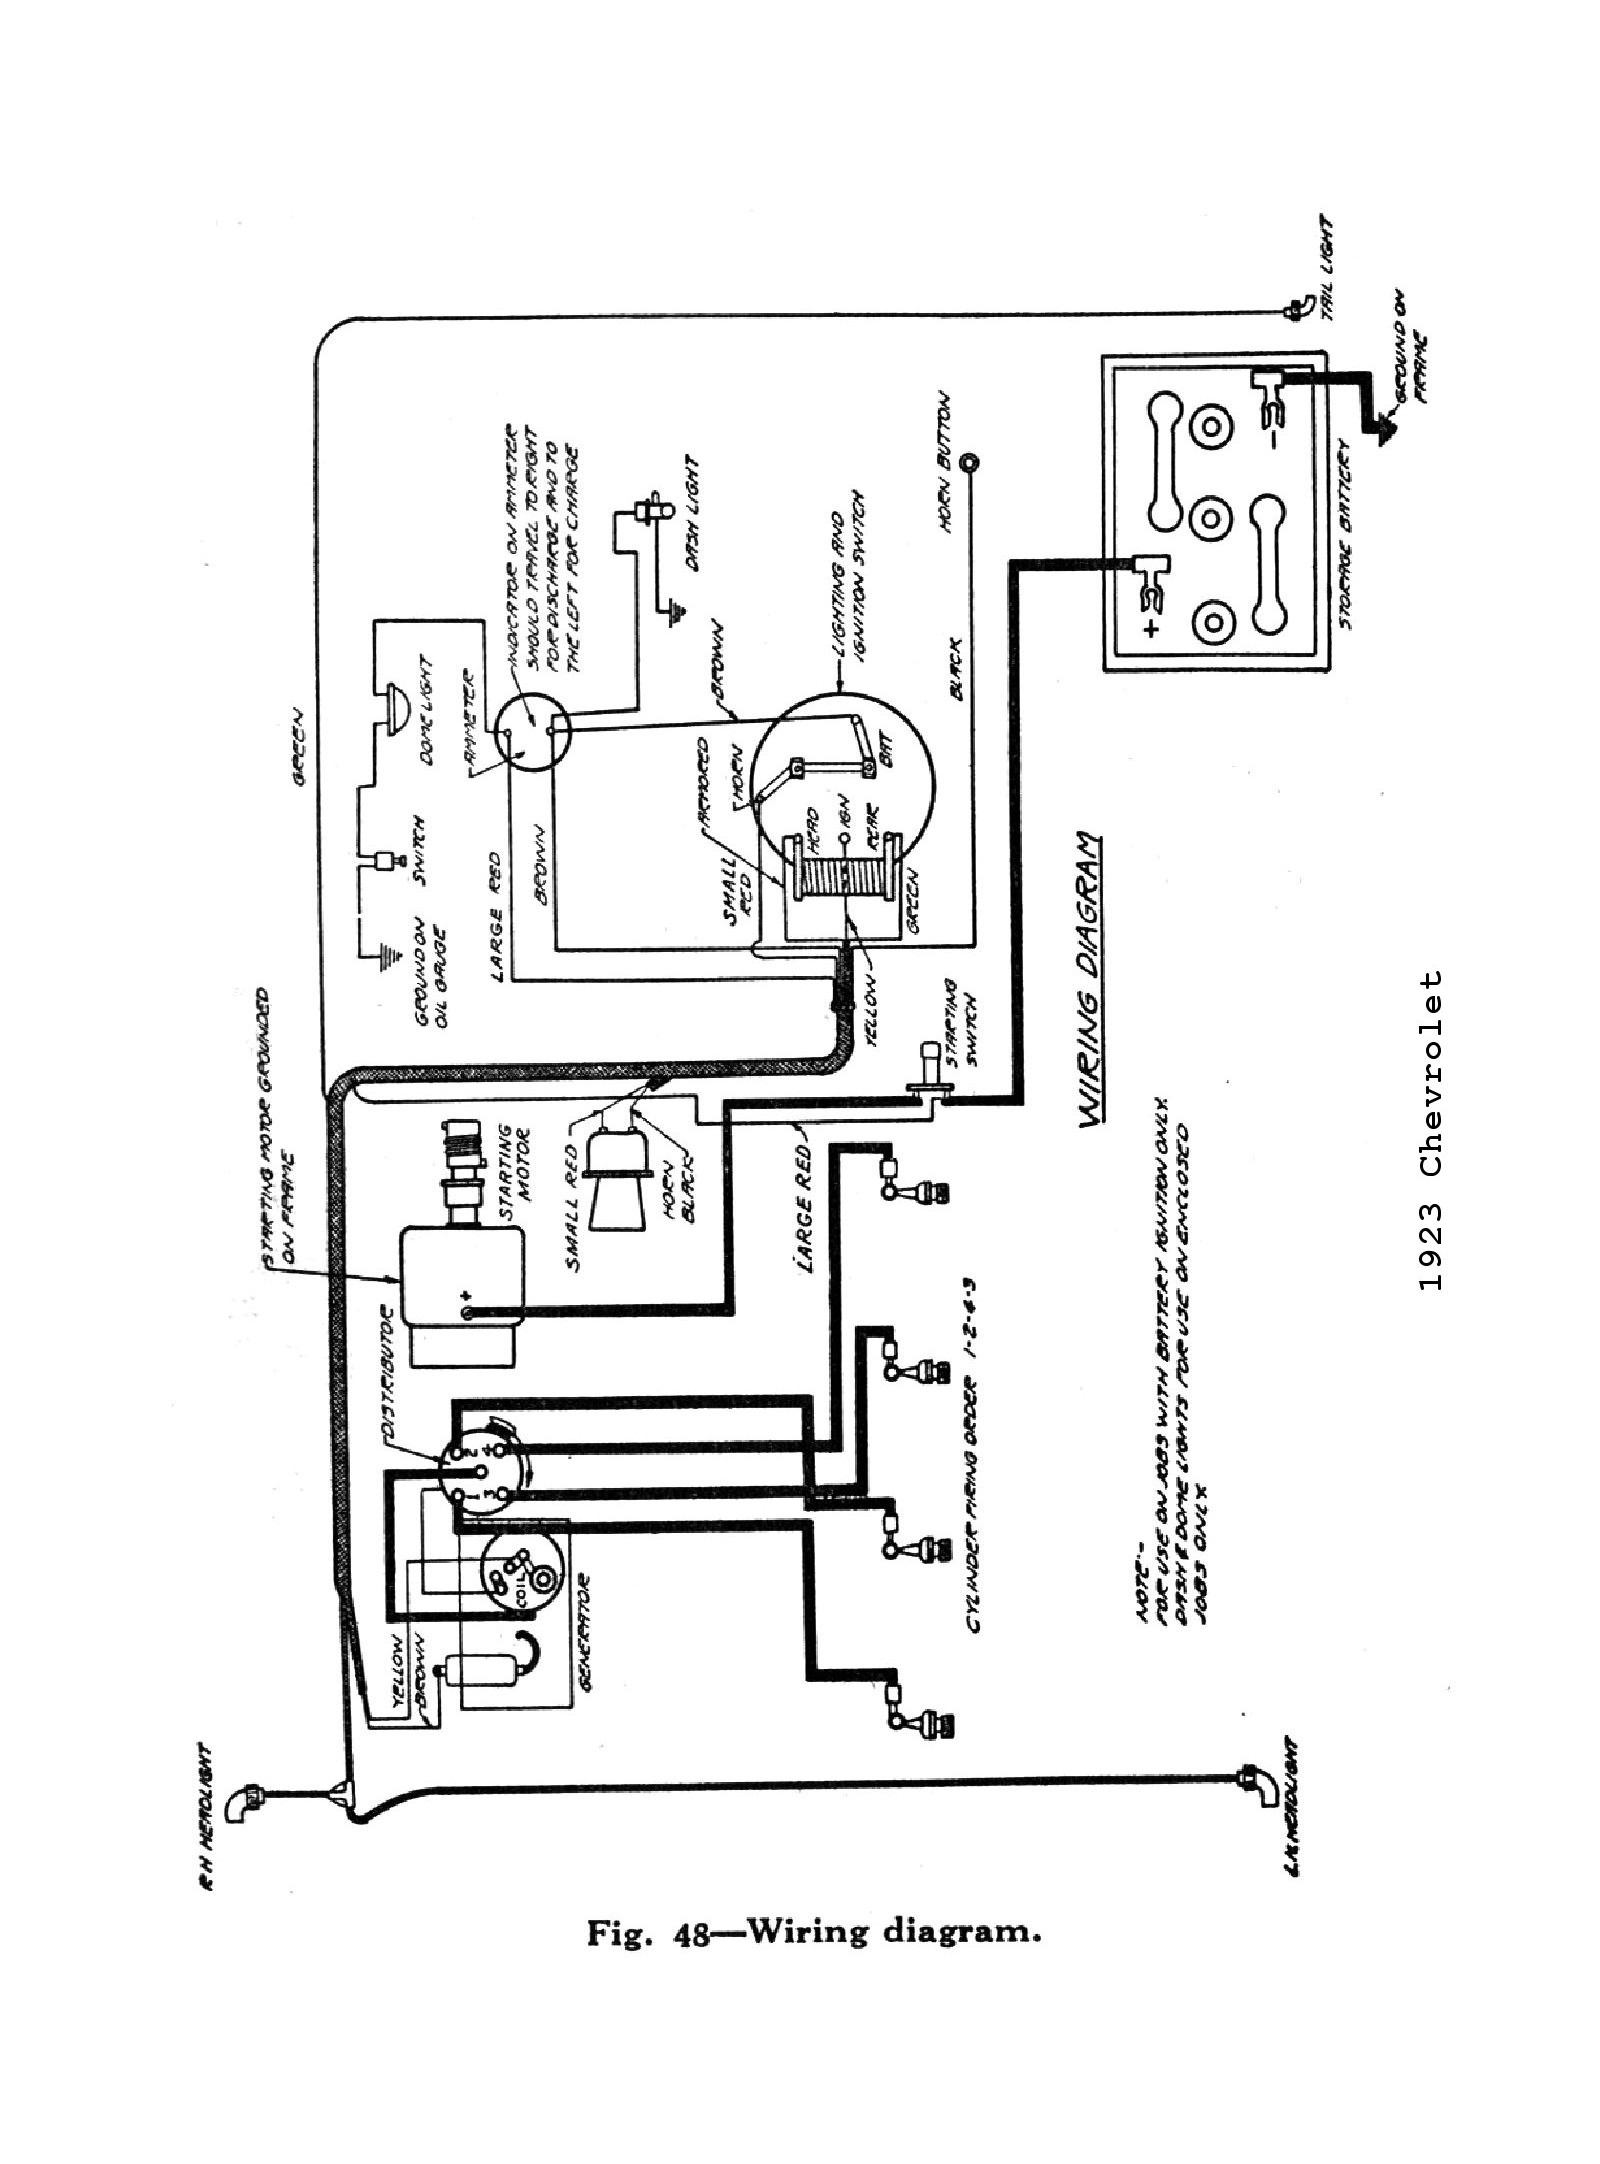 chevrolet pickup wiring diagram 1940 get image about wiring 1940 chevy truck wiring harness wiring diagram library chevrolet pickup wiring diagram 1940 get image about wiring